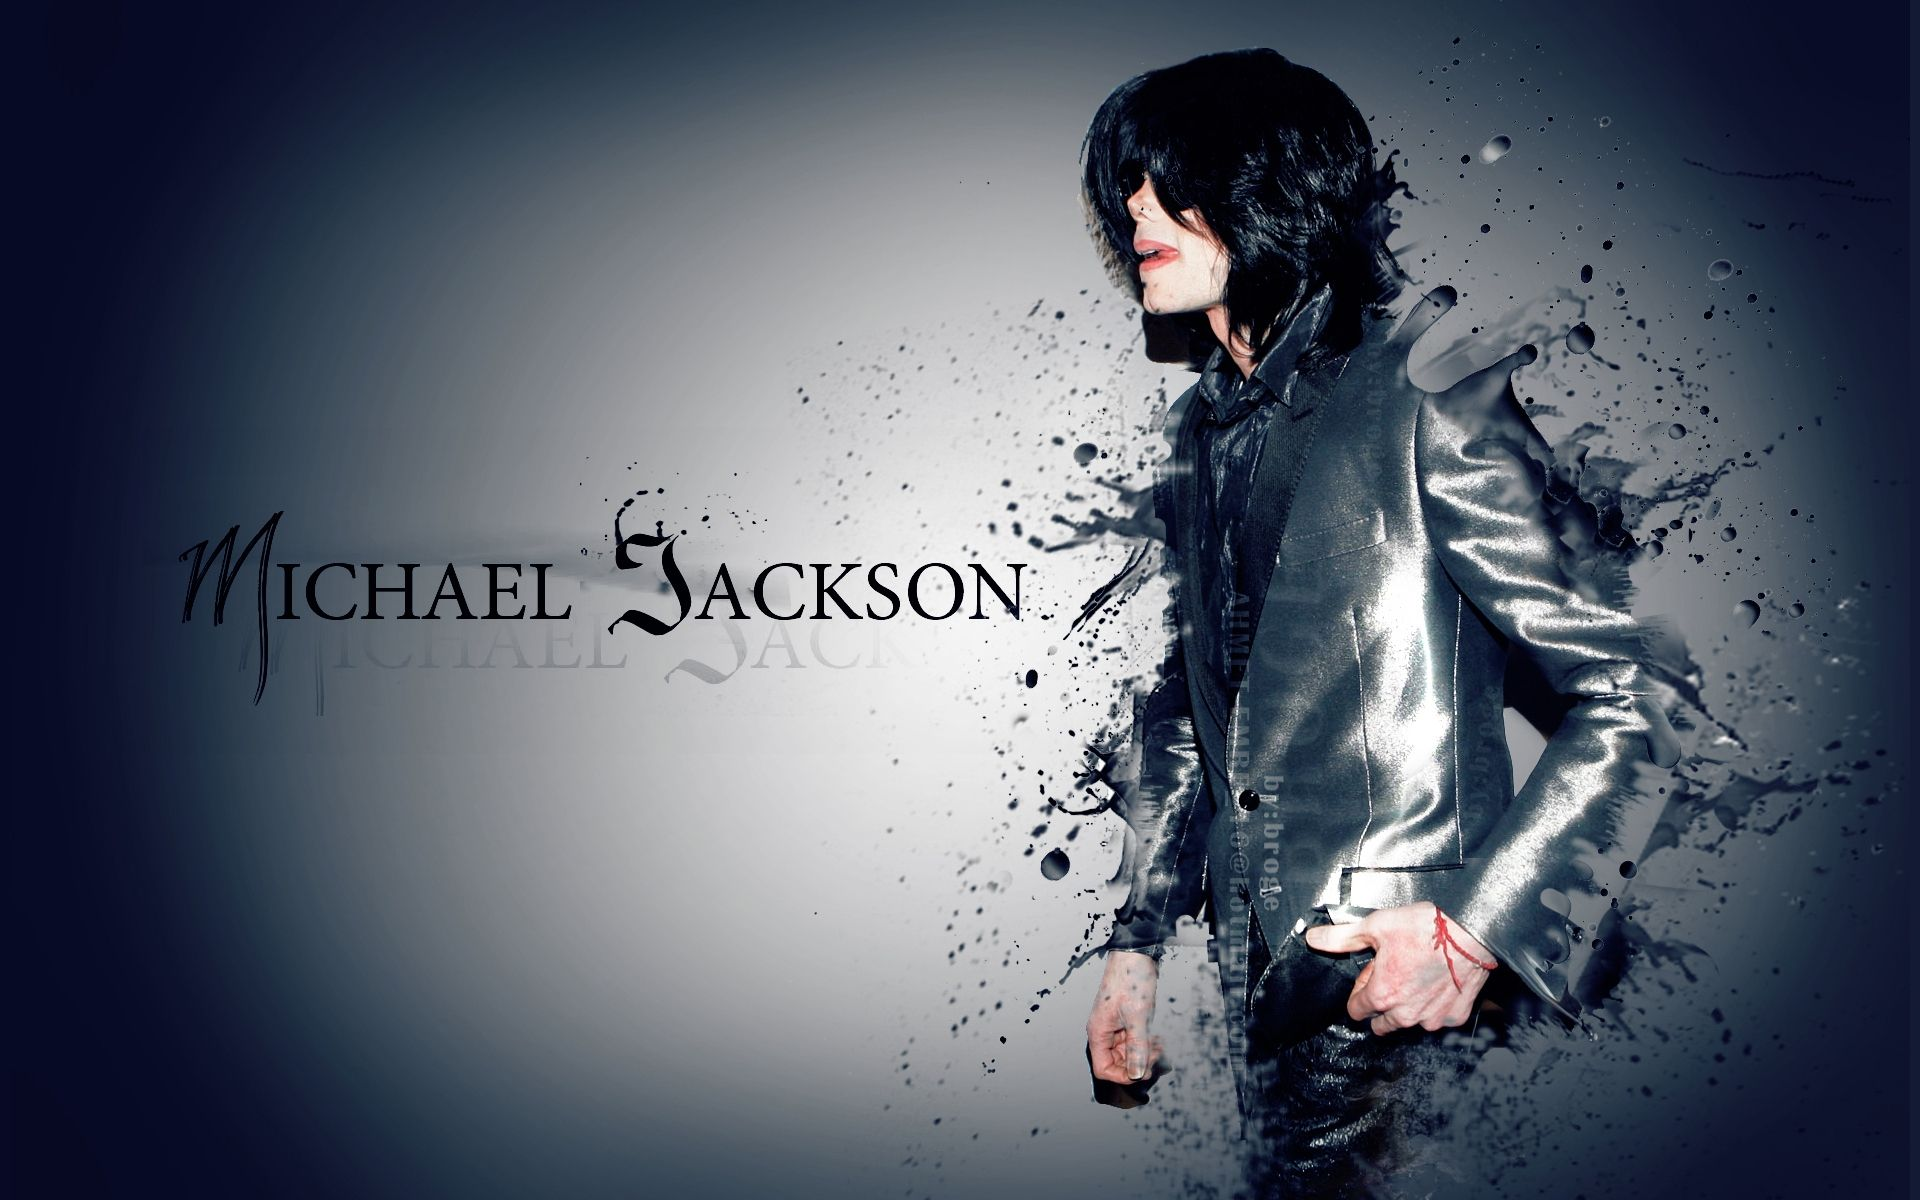 michael jackson animated wallpaper |  wallpapers.biz/michael